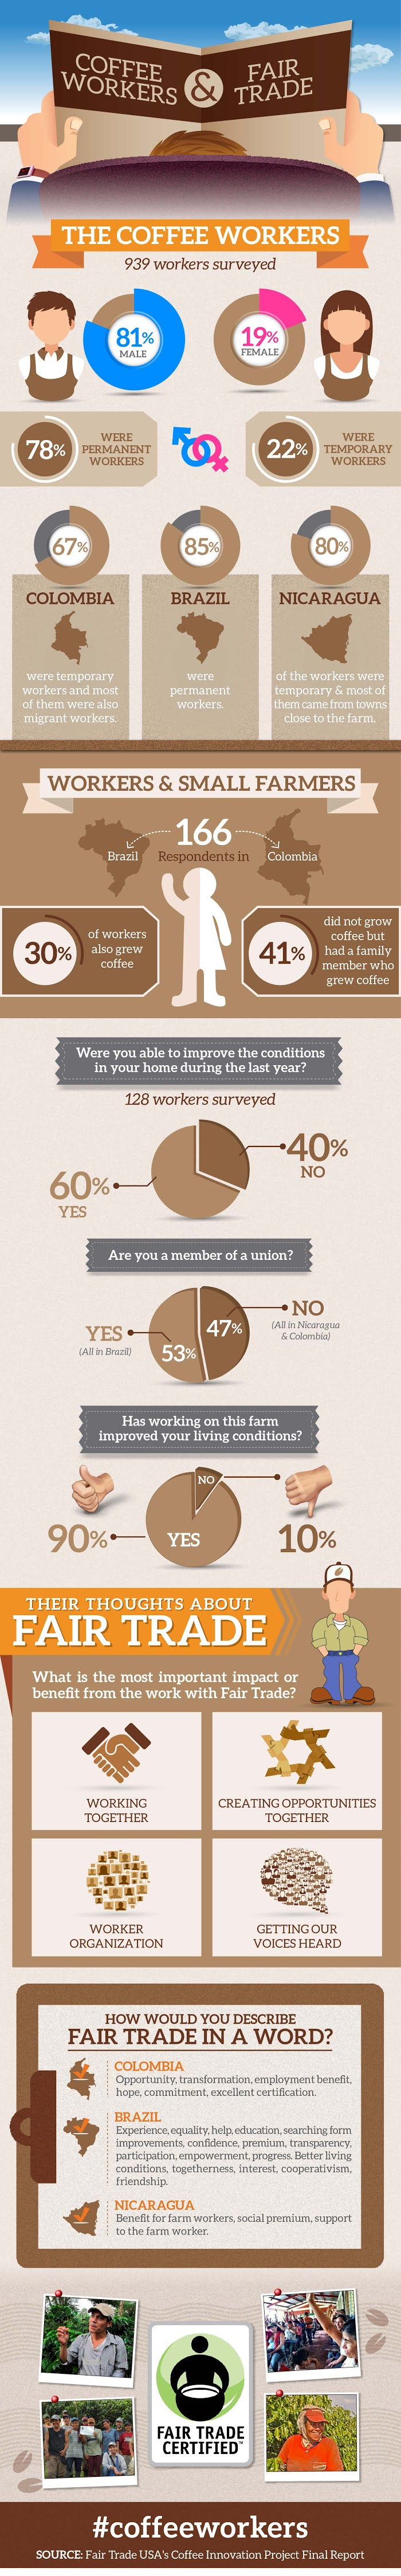 Coffee Workers And Fair Trade #infographic #Coffee Workers #infographics #Trade #Fair Trade